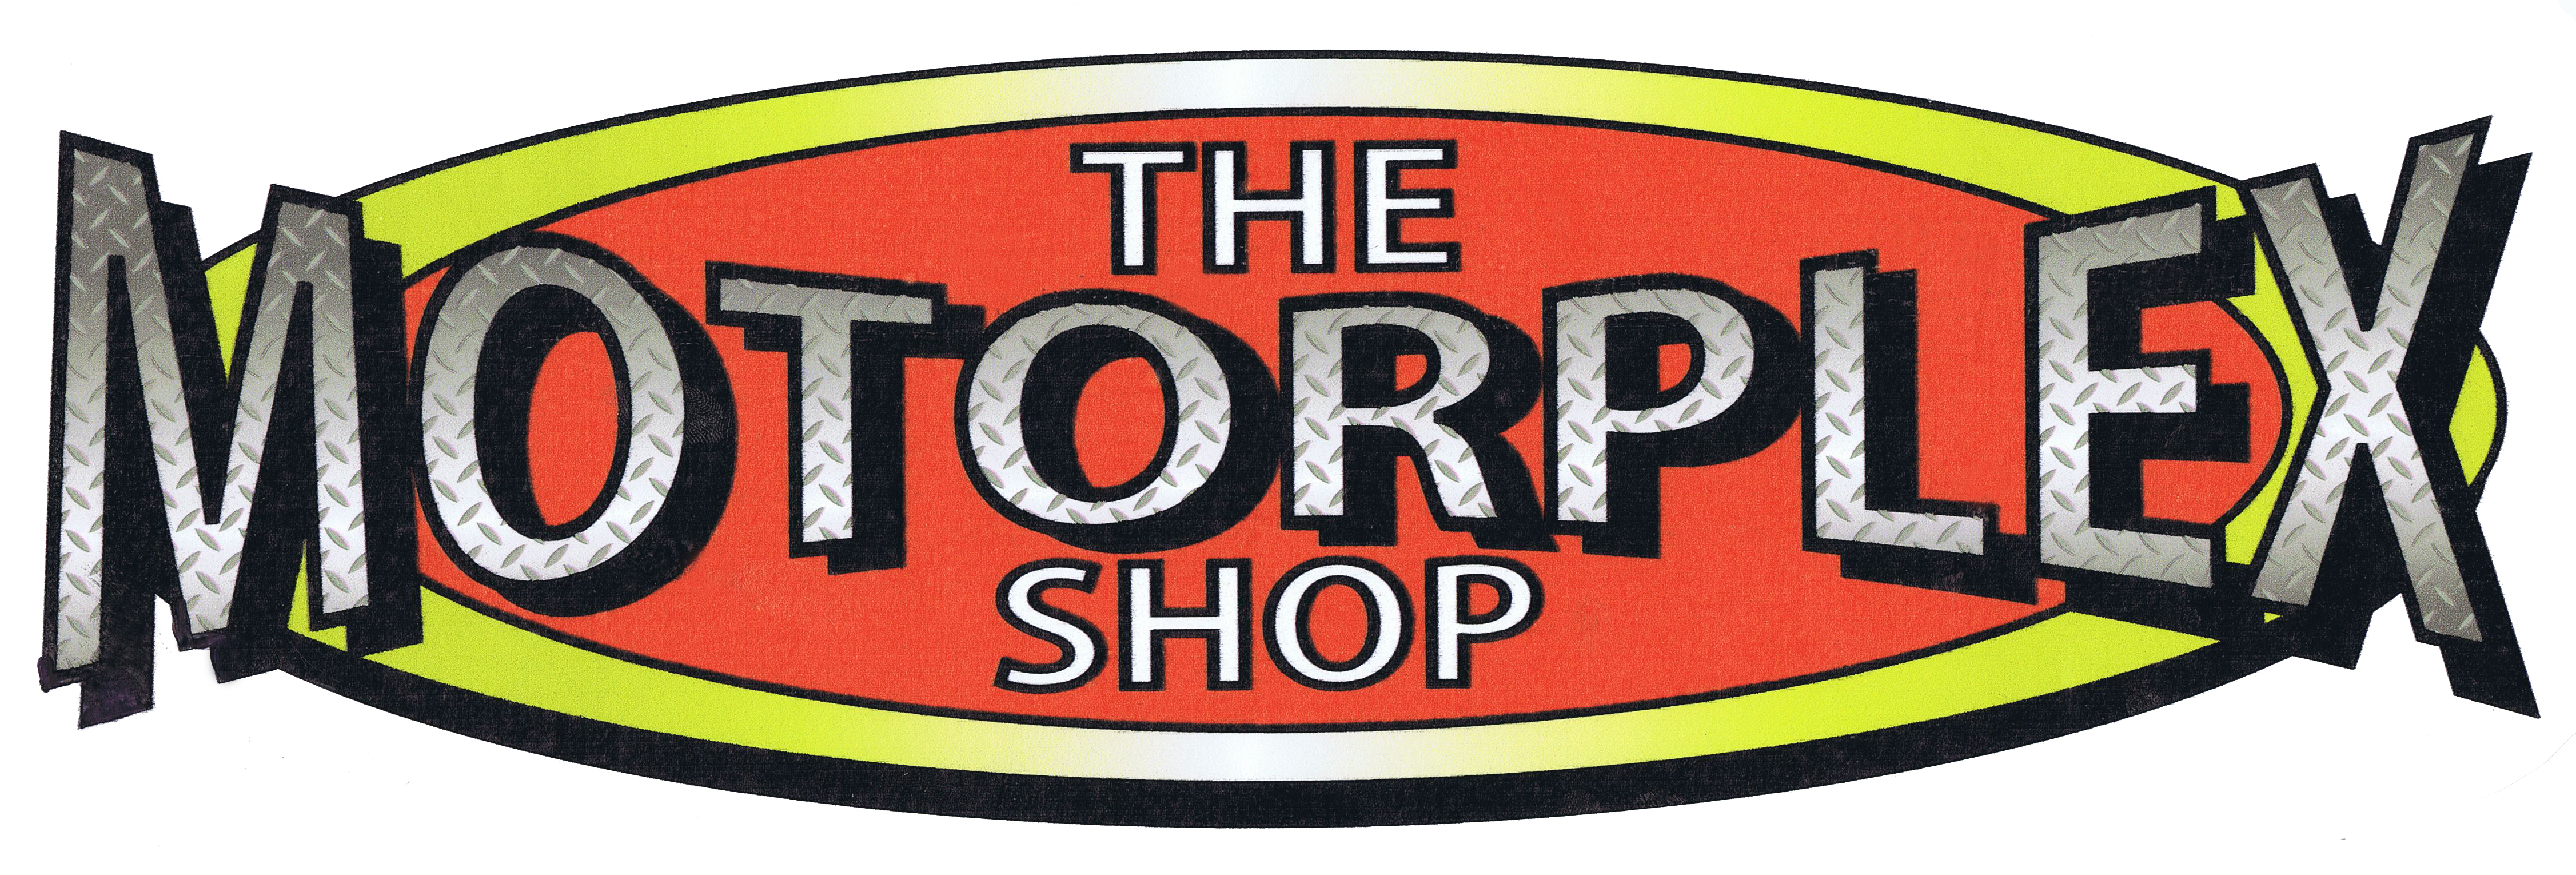 The Motorplex Shop